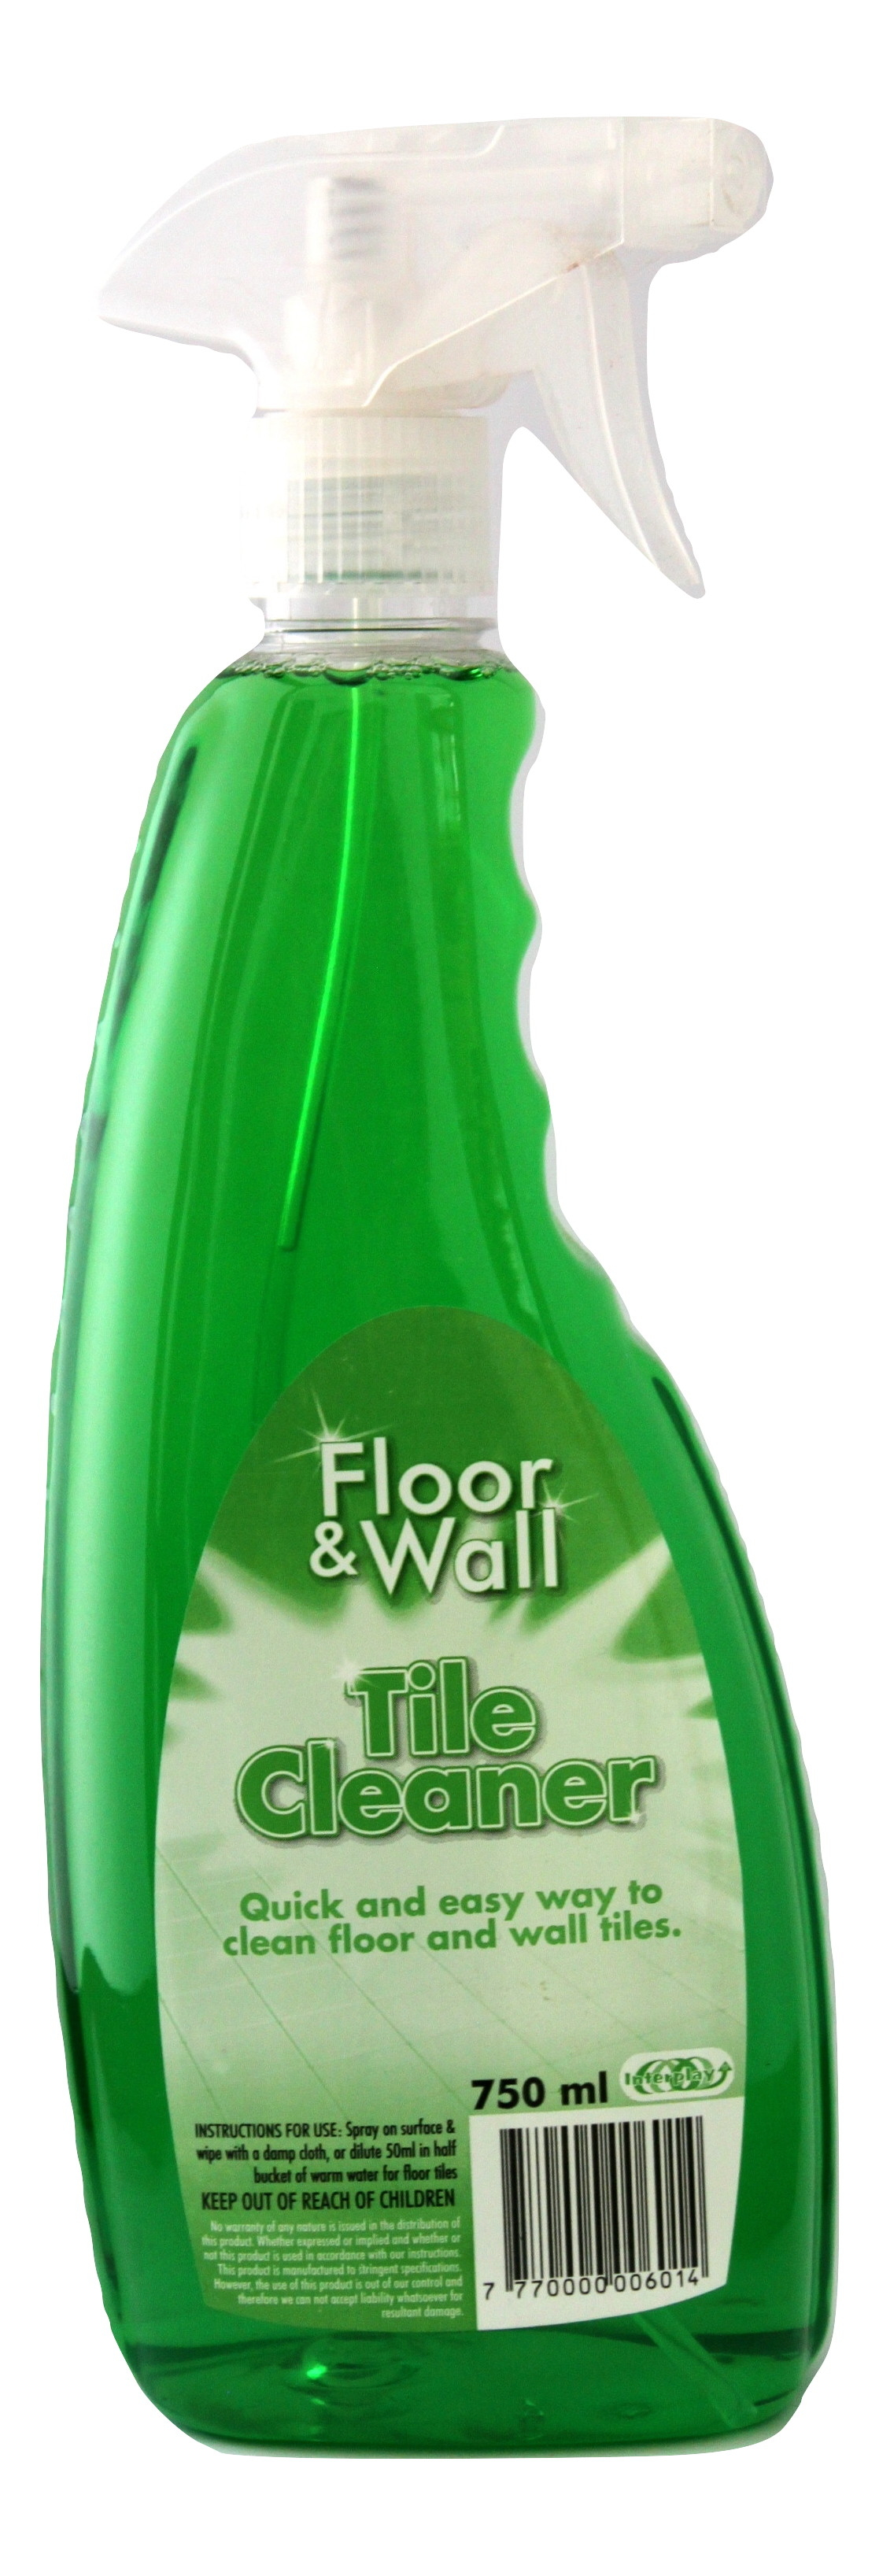 floor-wall-&amp-tile-cleaner